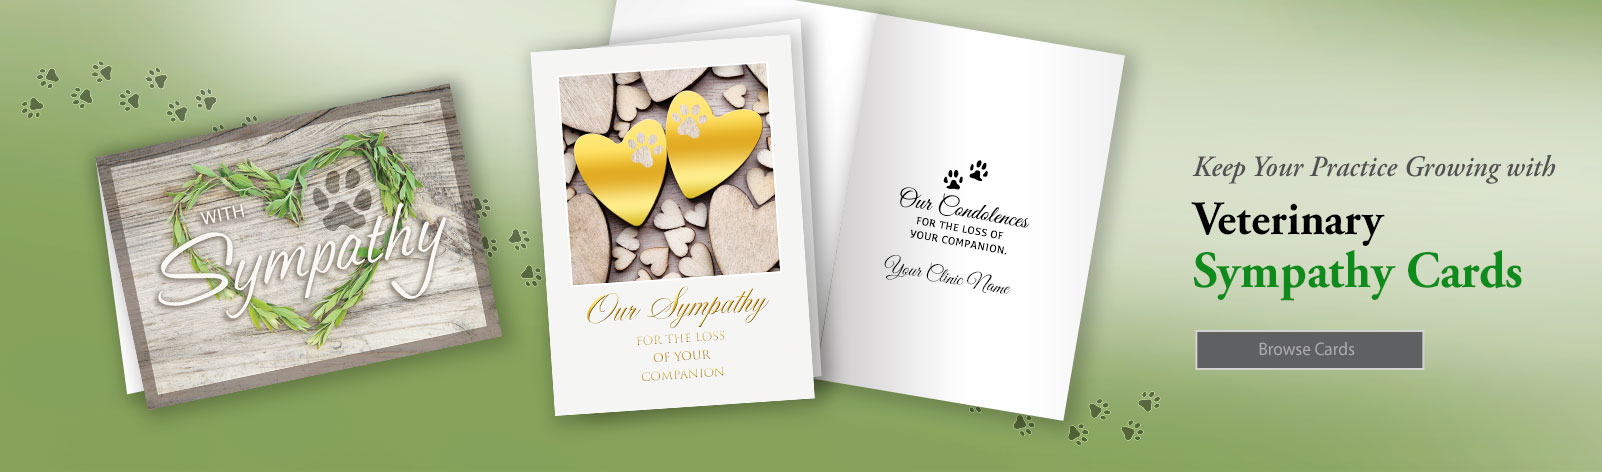 Veterinary Pet Sympathy Cards let clients know your care!